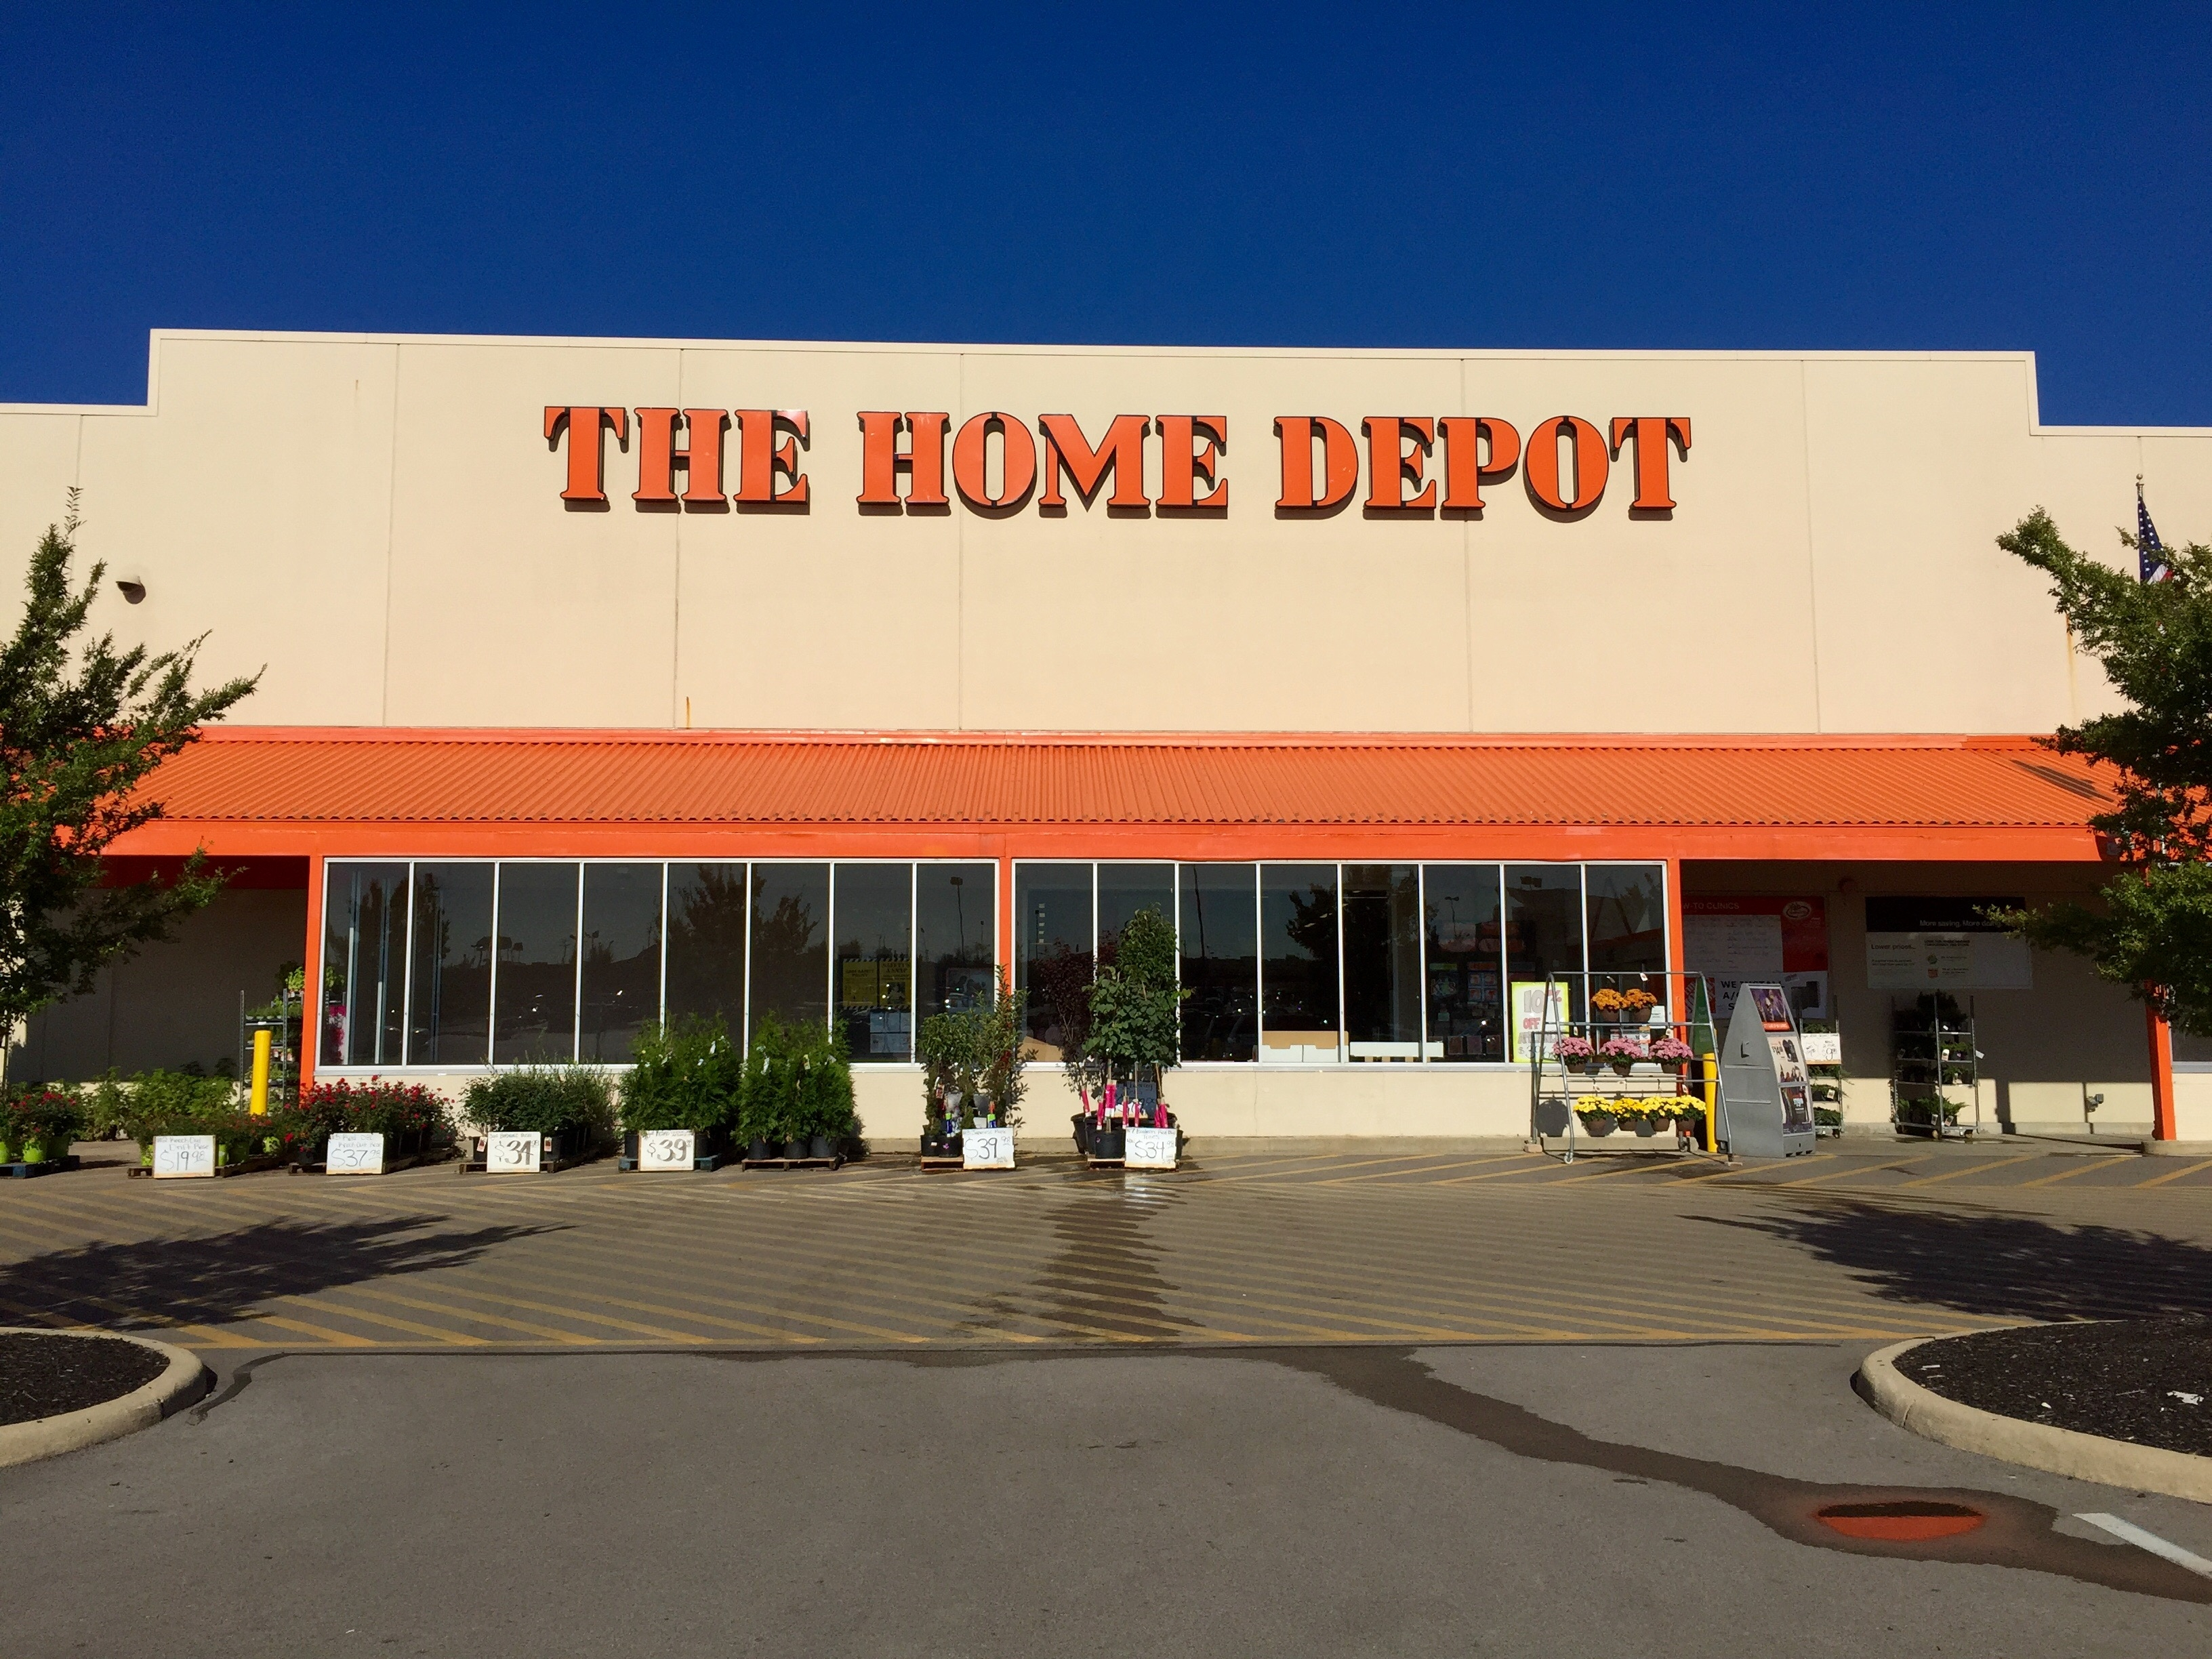 Find 43 listings related to Home Depot Truck Rental in Chicago on settlements-cause.ml See reviews, photos, directions, phone numbers and more for Home Depot Truck Rental locations in Chicago, IL.